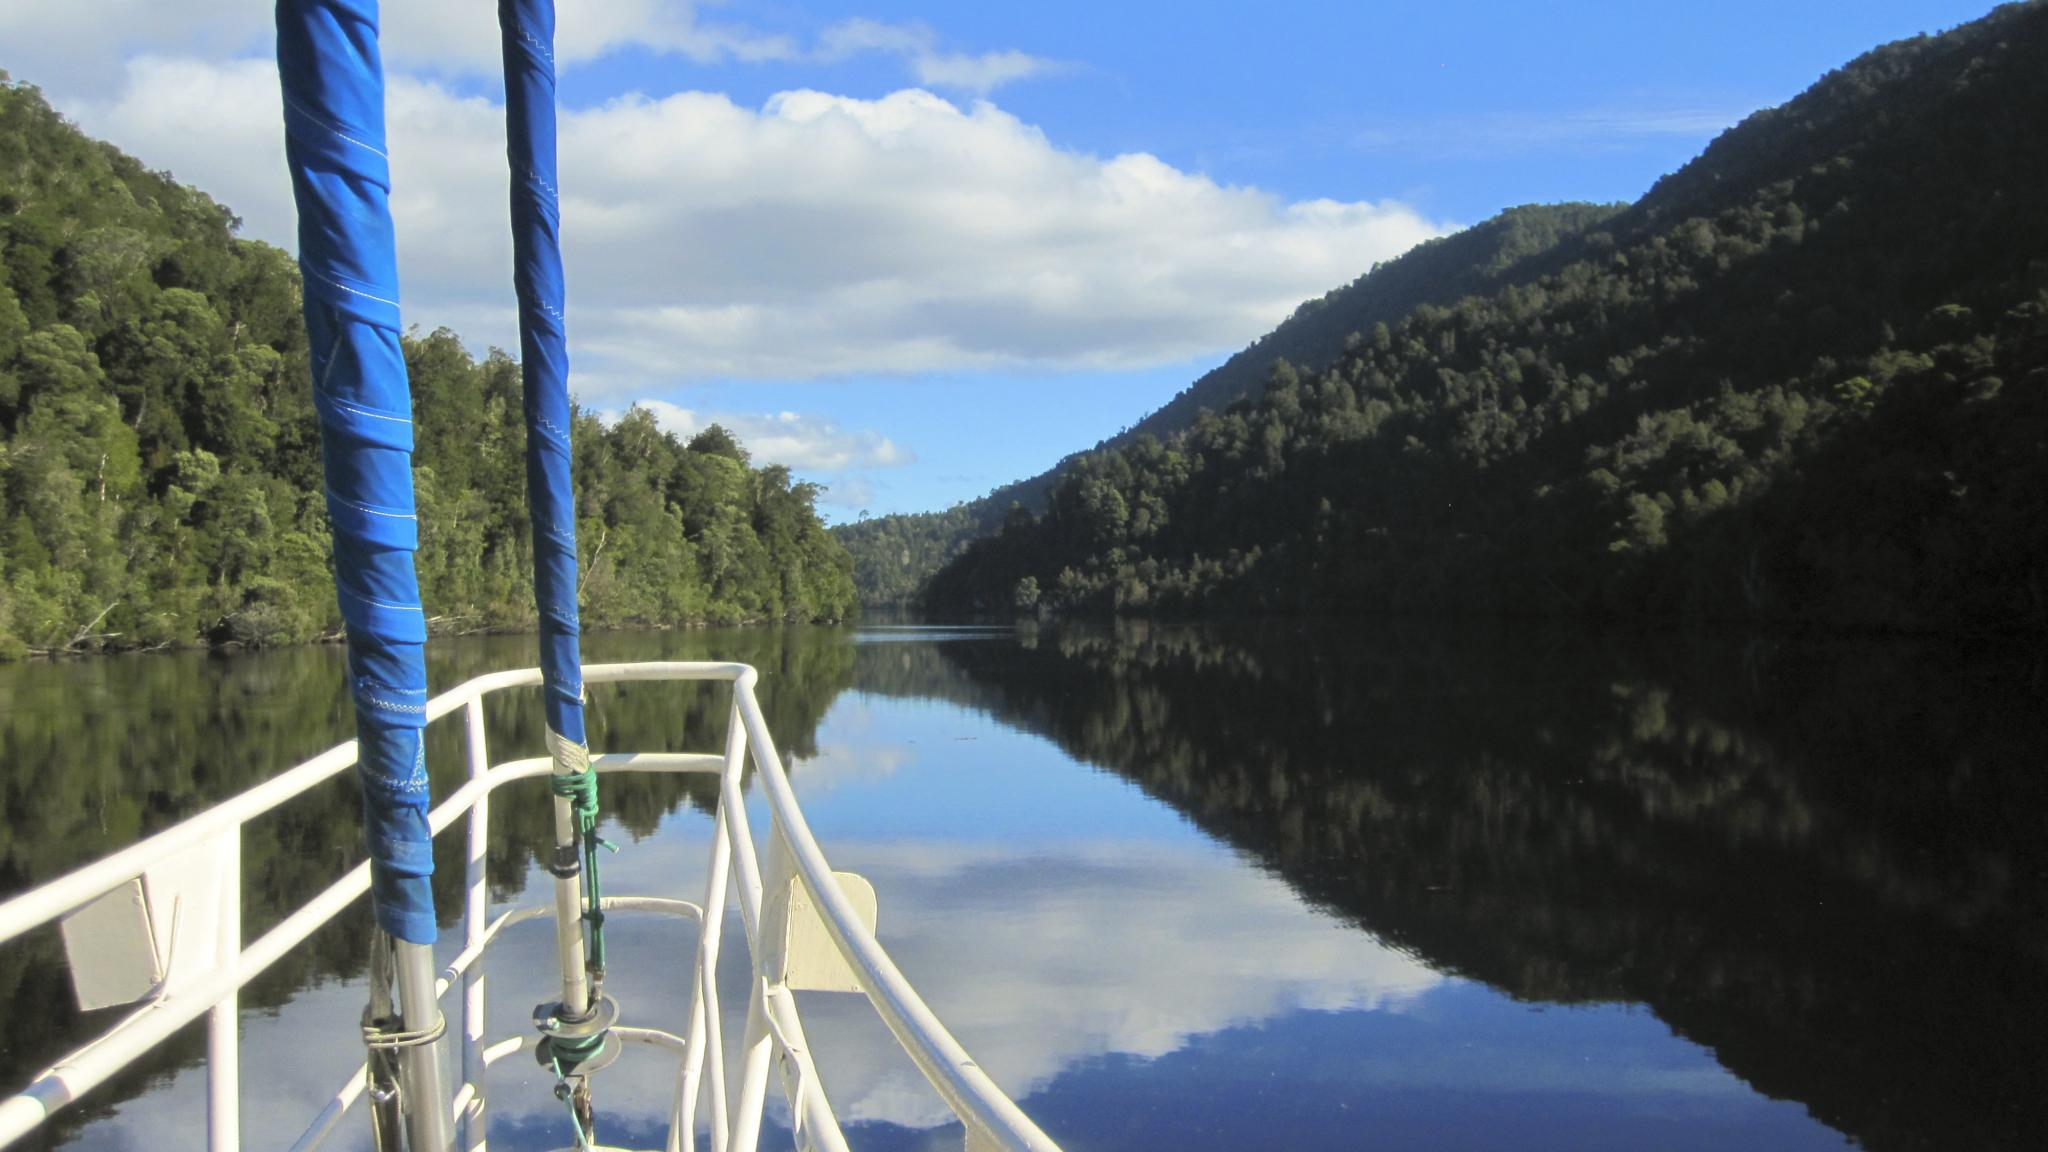 Sailing back from a kayaking adventure on the Gordon River